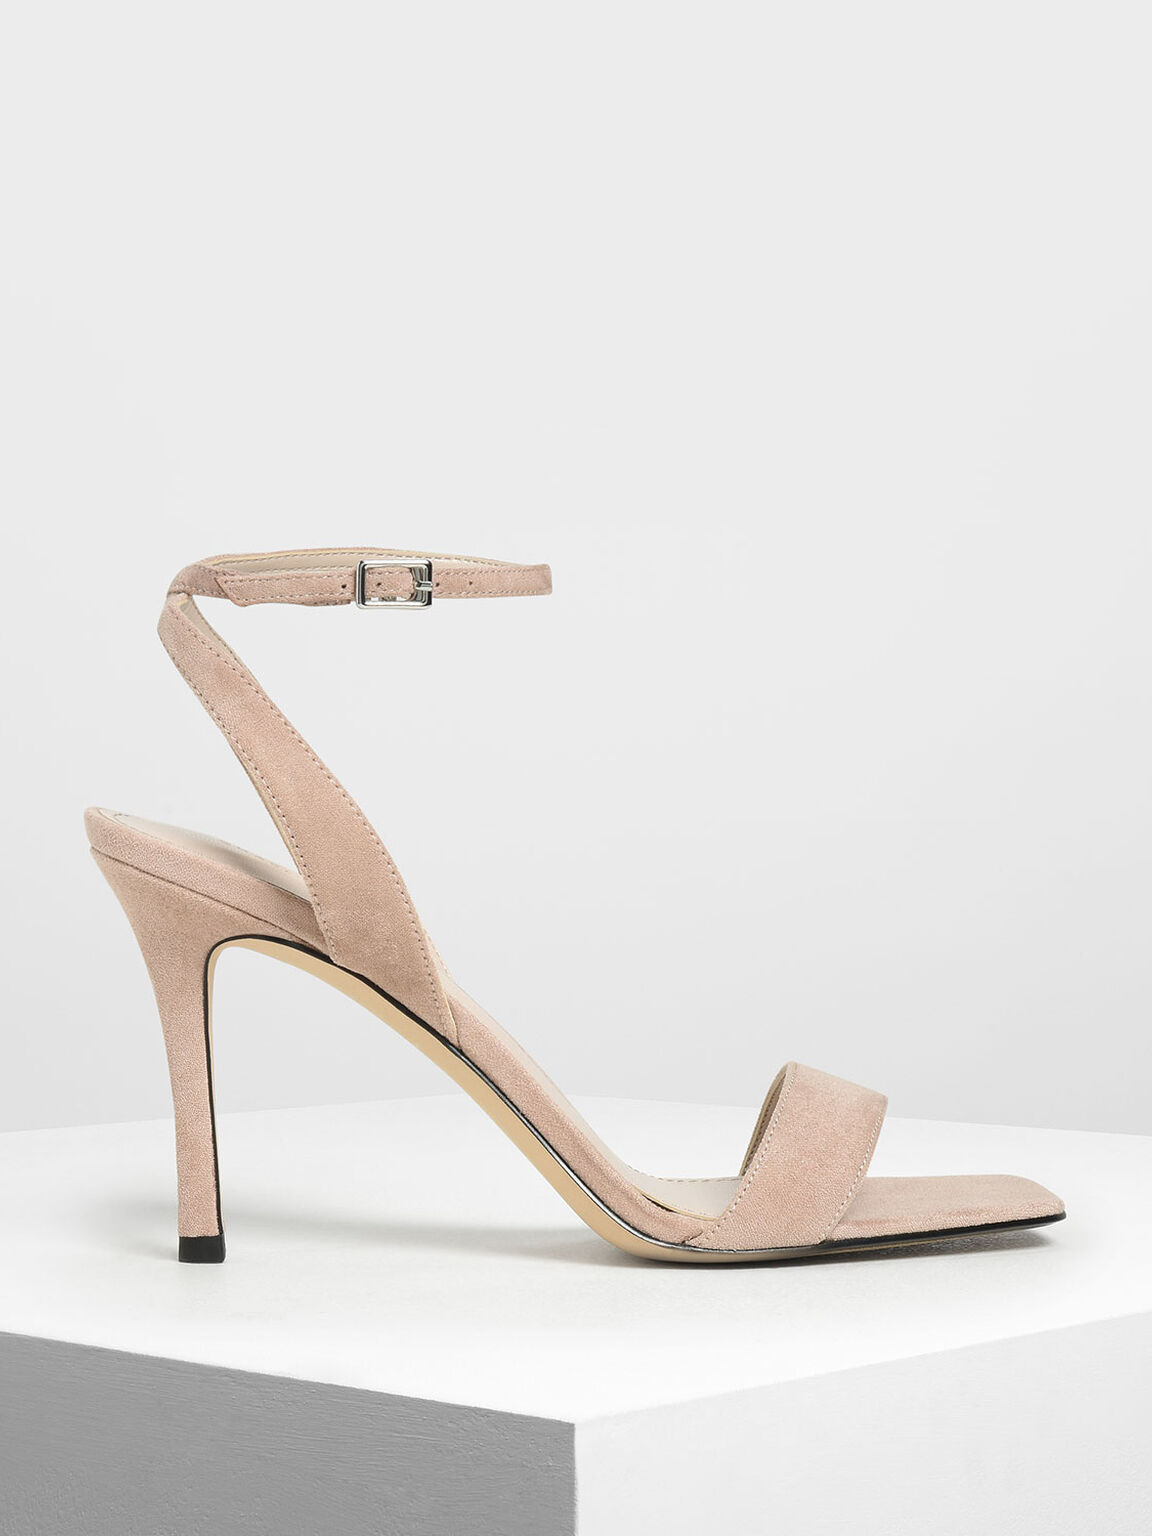 Open Toe Ankle Strap Stiletto Sandals, Nude, hi-res